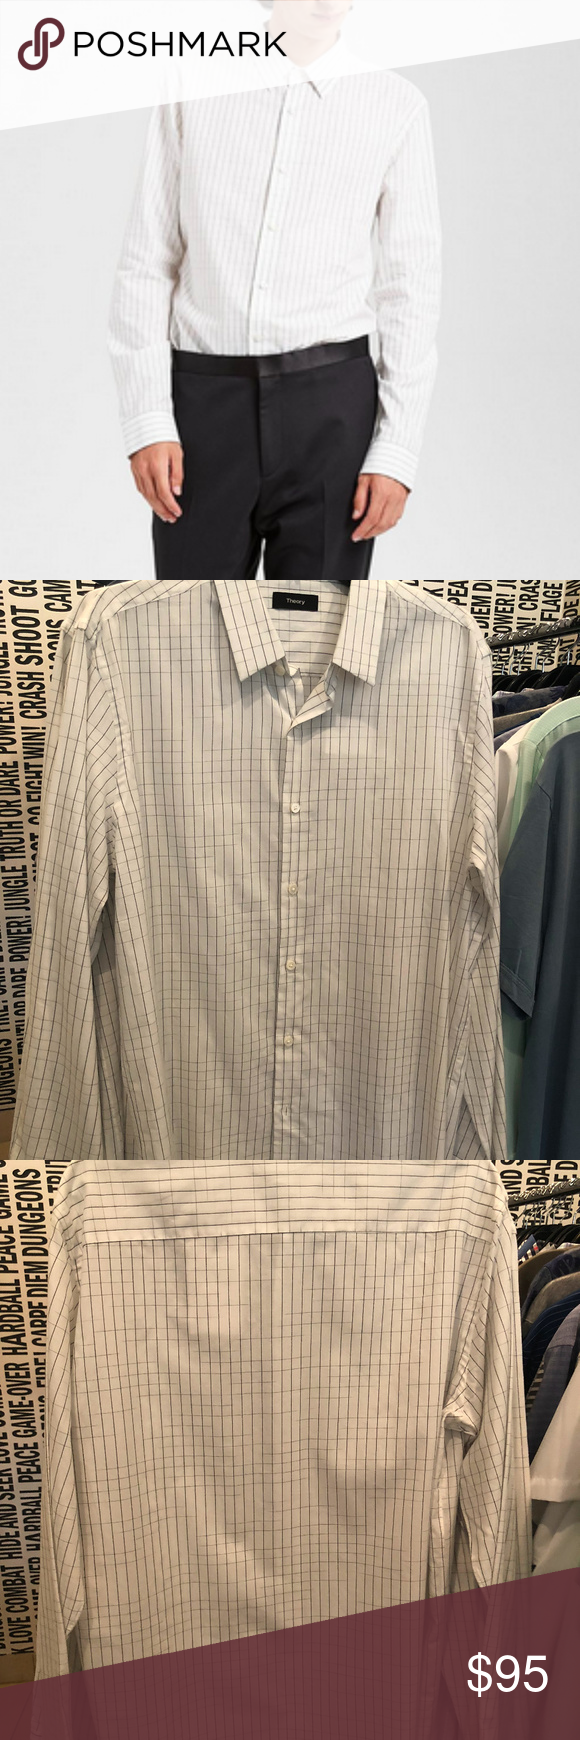 Theory Cotton Space Dyed Clean Shirt Boutique In 2018 My Posh